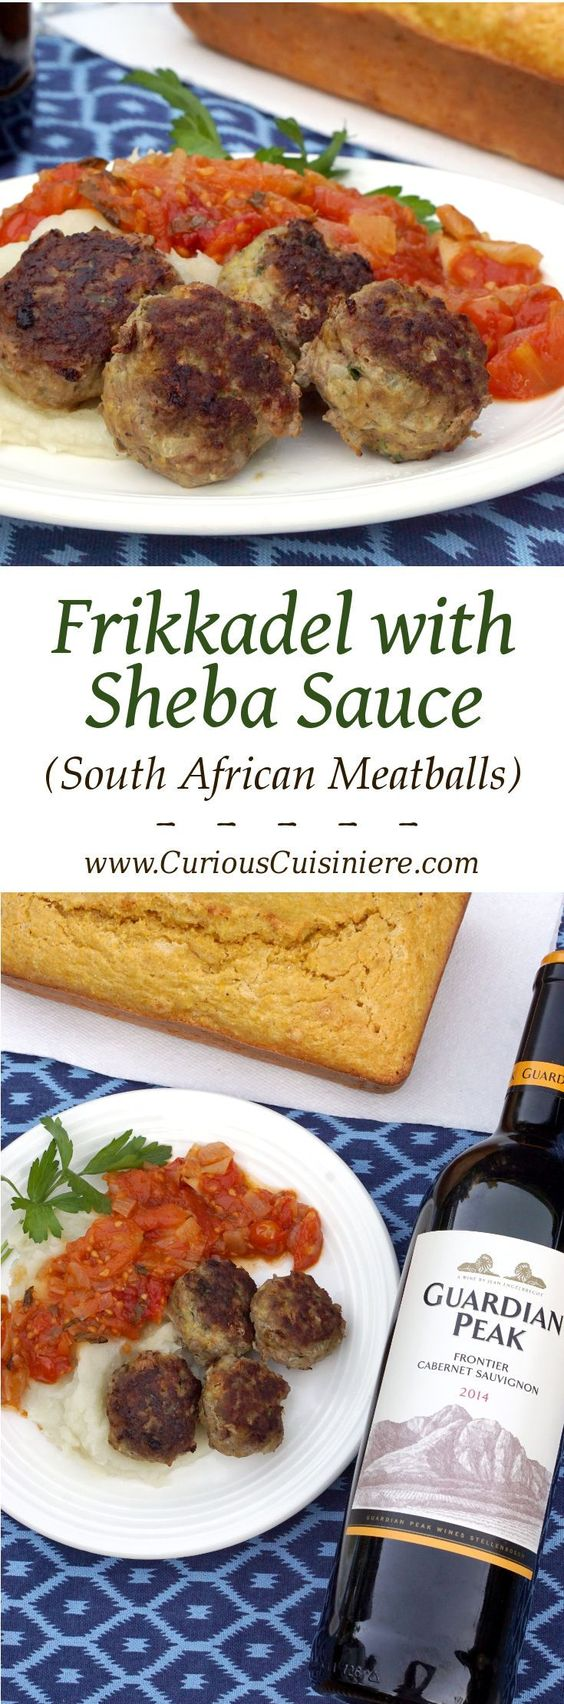 South african frikkadel recipe tomato sauce sauces and cabernet explore african food recipes africa recipes and more forumfinder Image collections